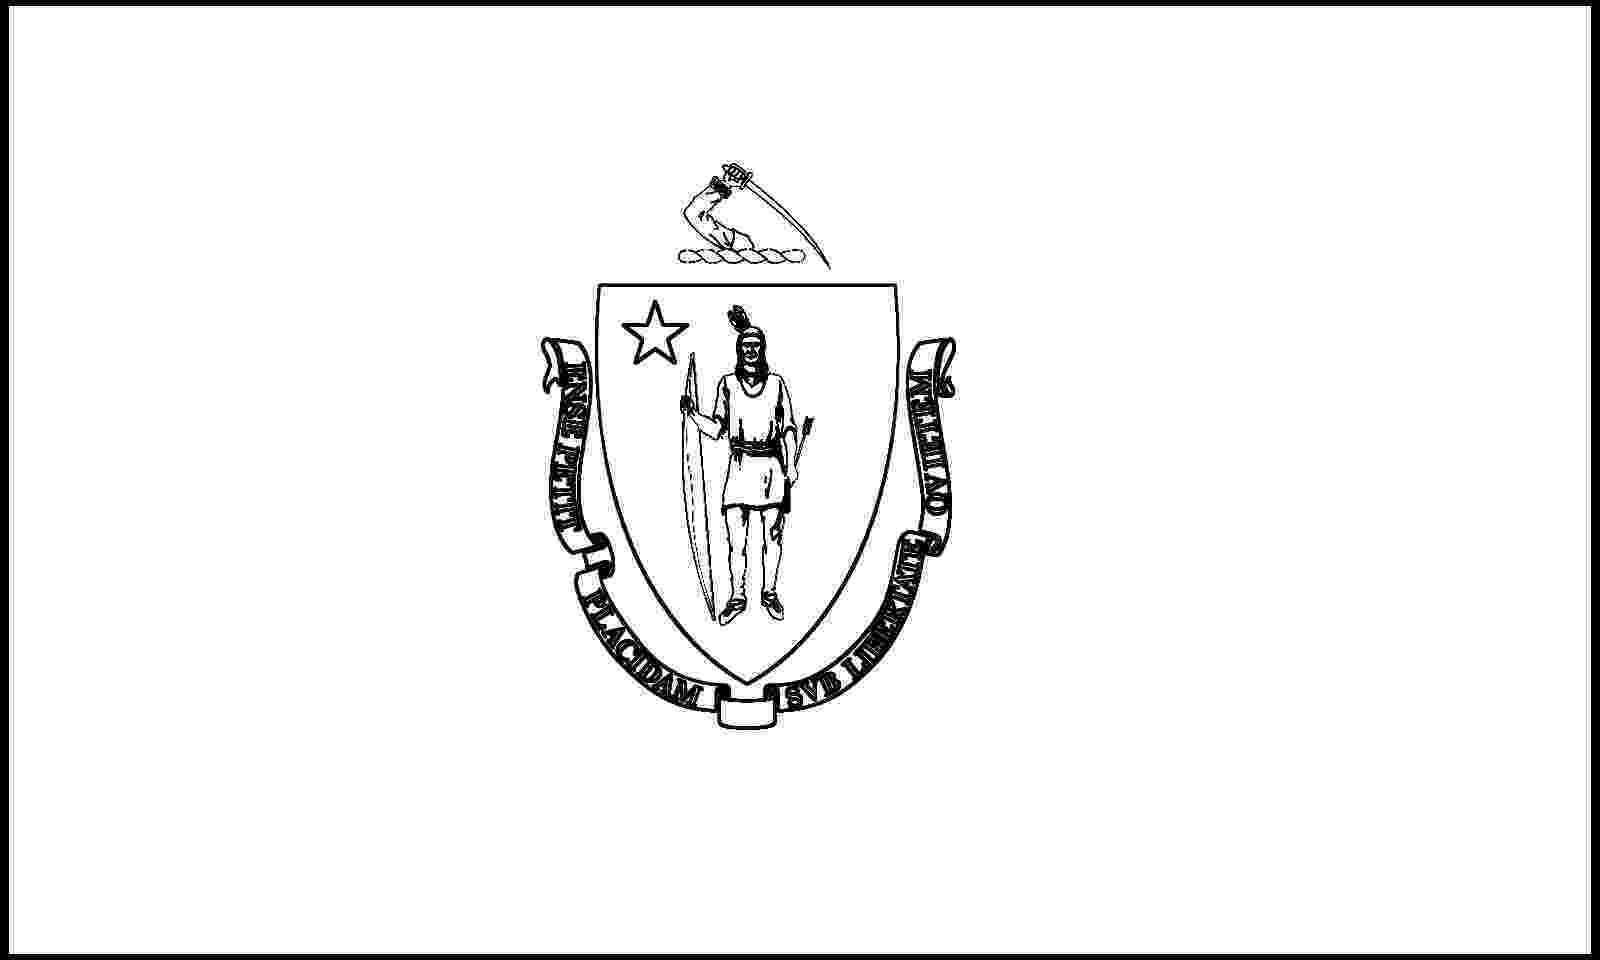 massachusetts state flag coloring page massachusetts state flag flag coloring massachusetts state page